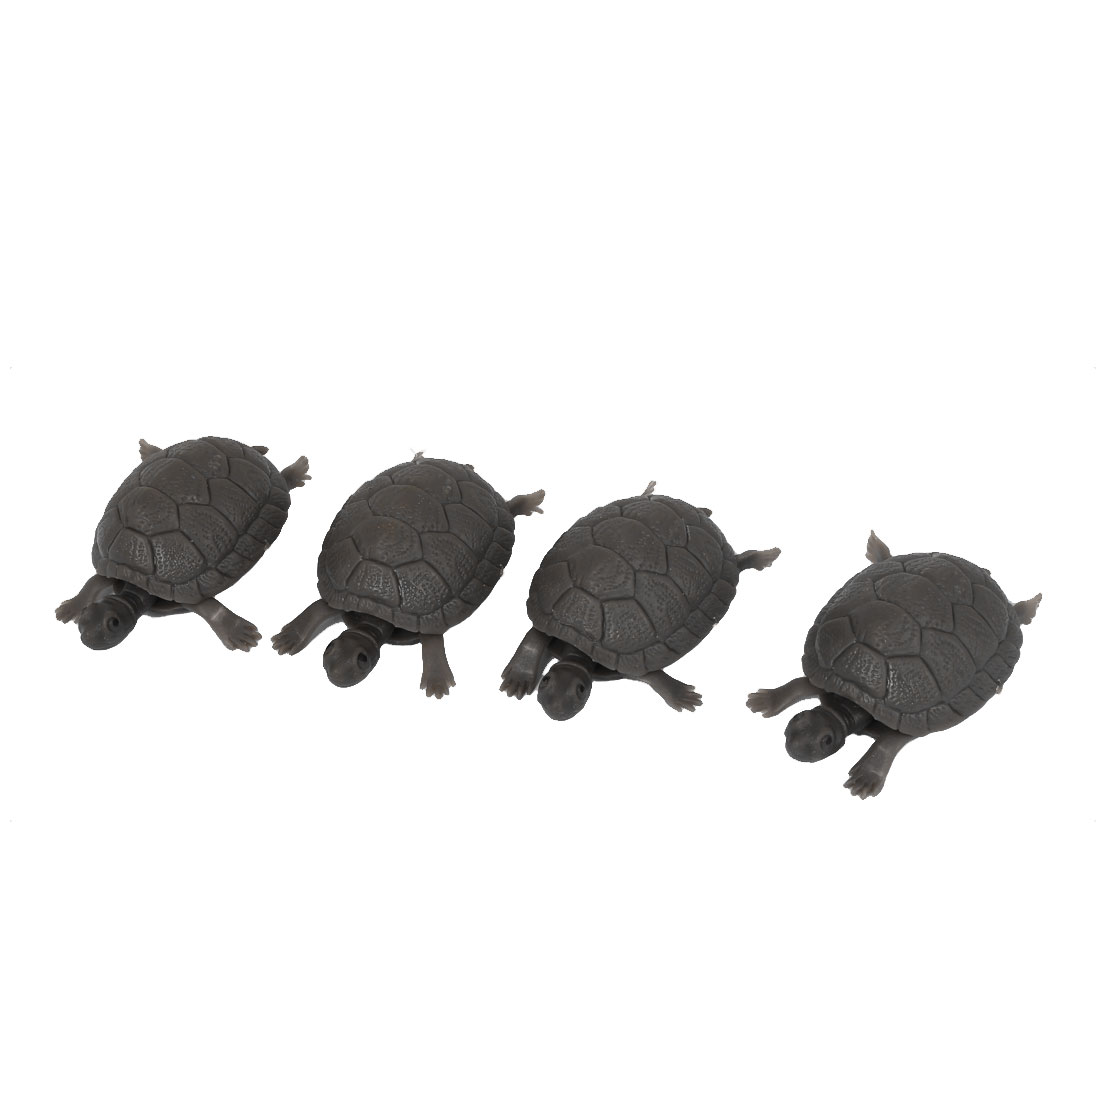 Plastic Tortoise Aquarium Decorative Ornament Fish Tank Decor 4pcs